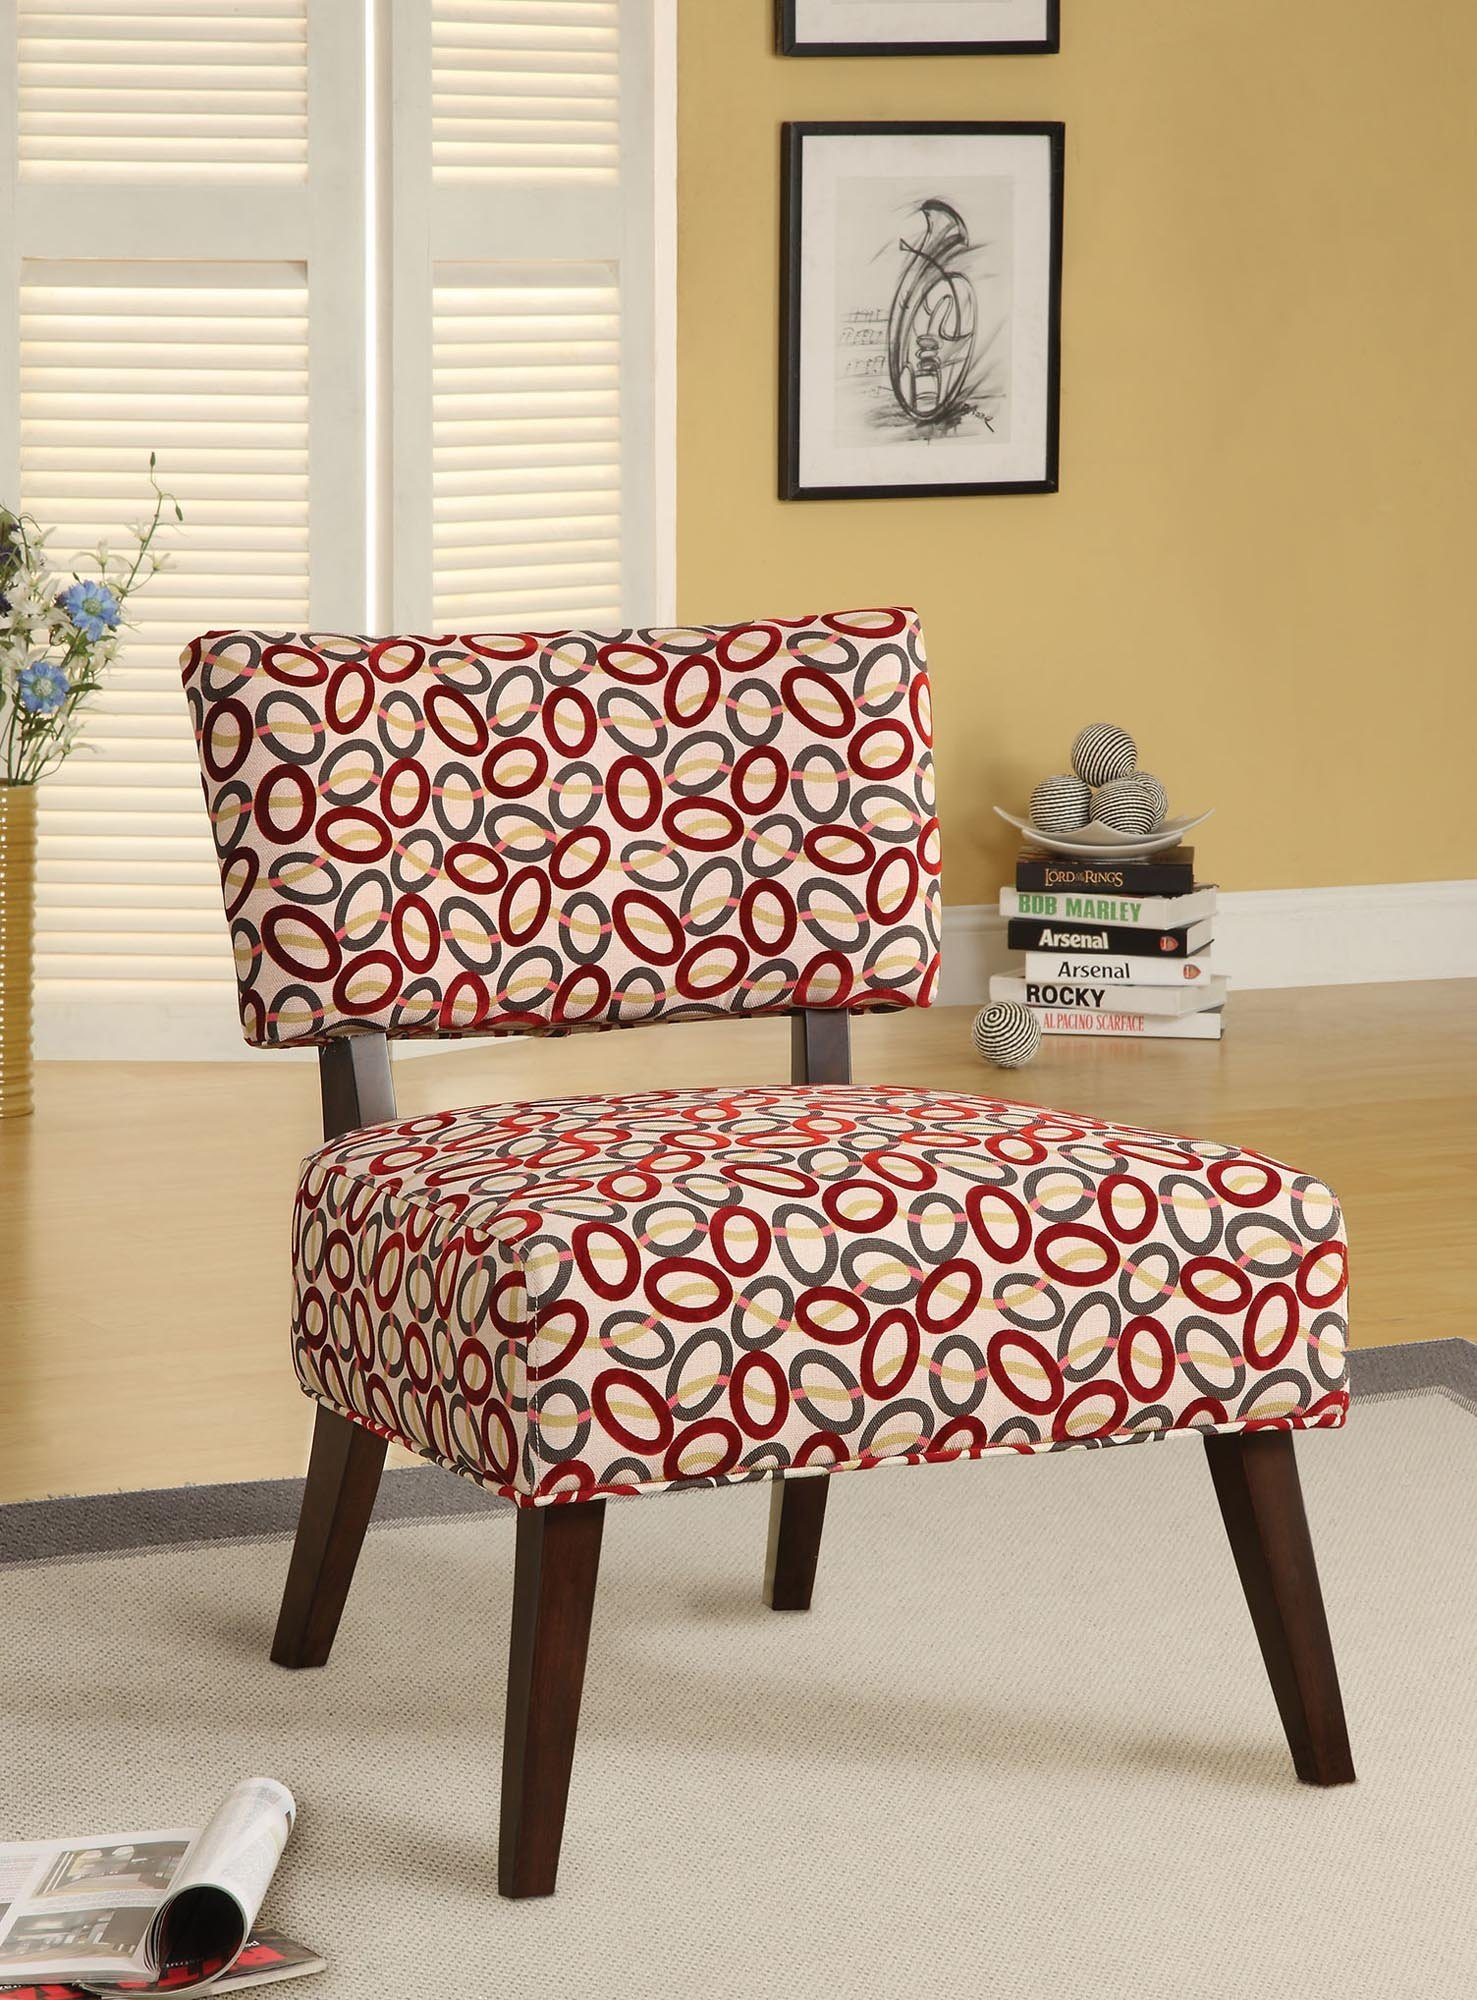 furniture clearance center accent chairs. Black Bedroom Furniture Sets. Home Design Ideas